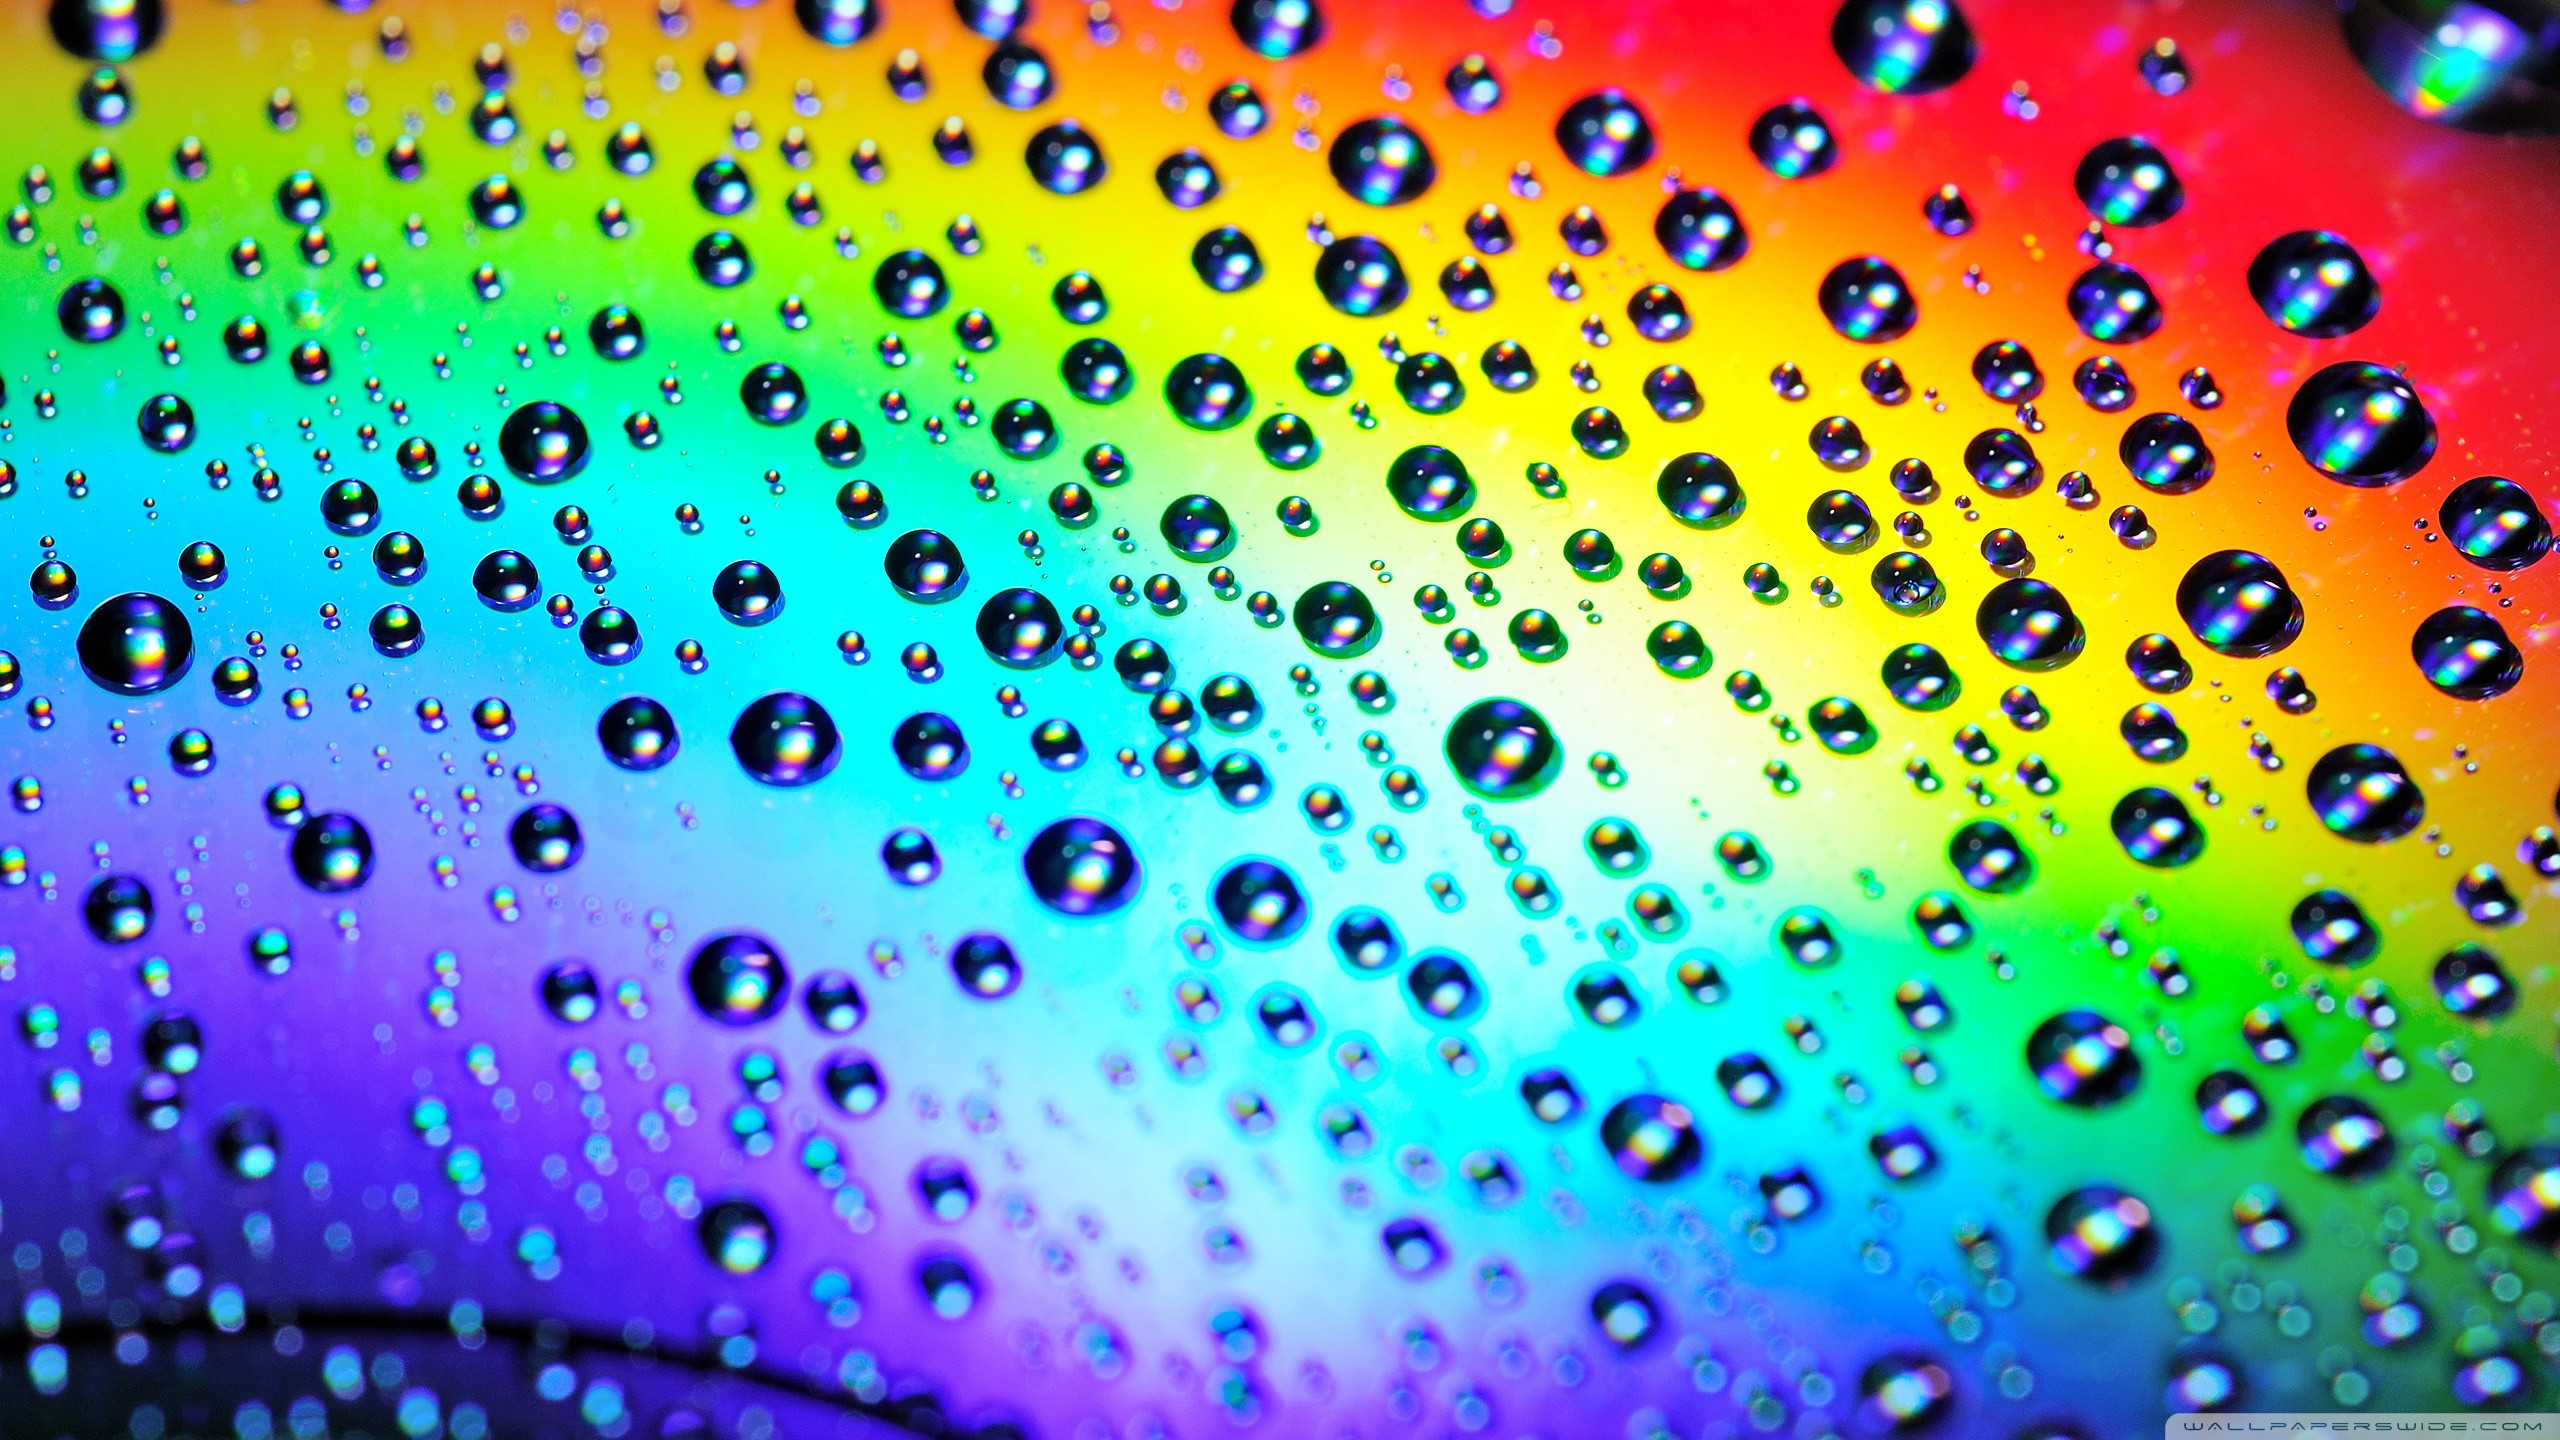 Raindrops Wallpapers on